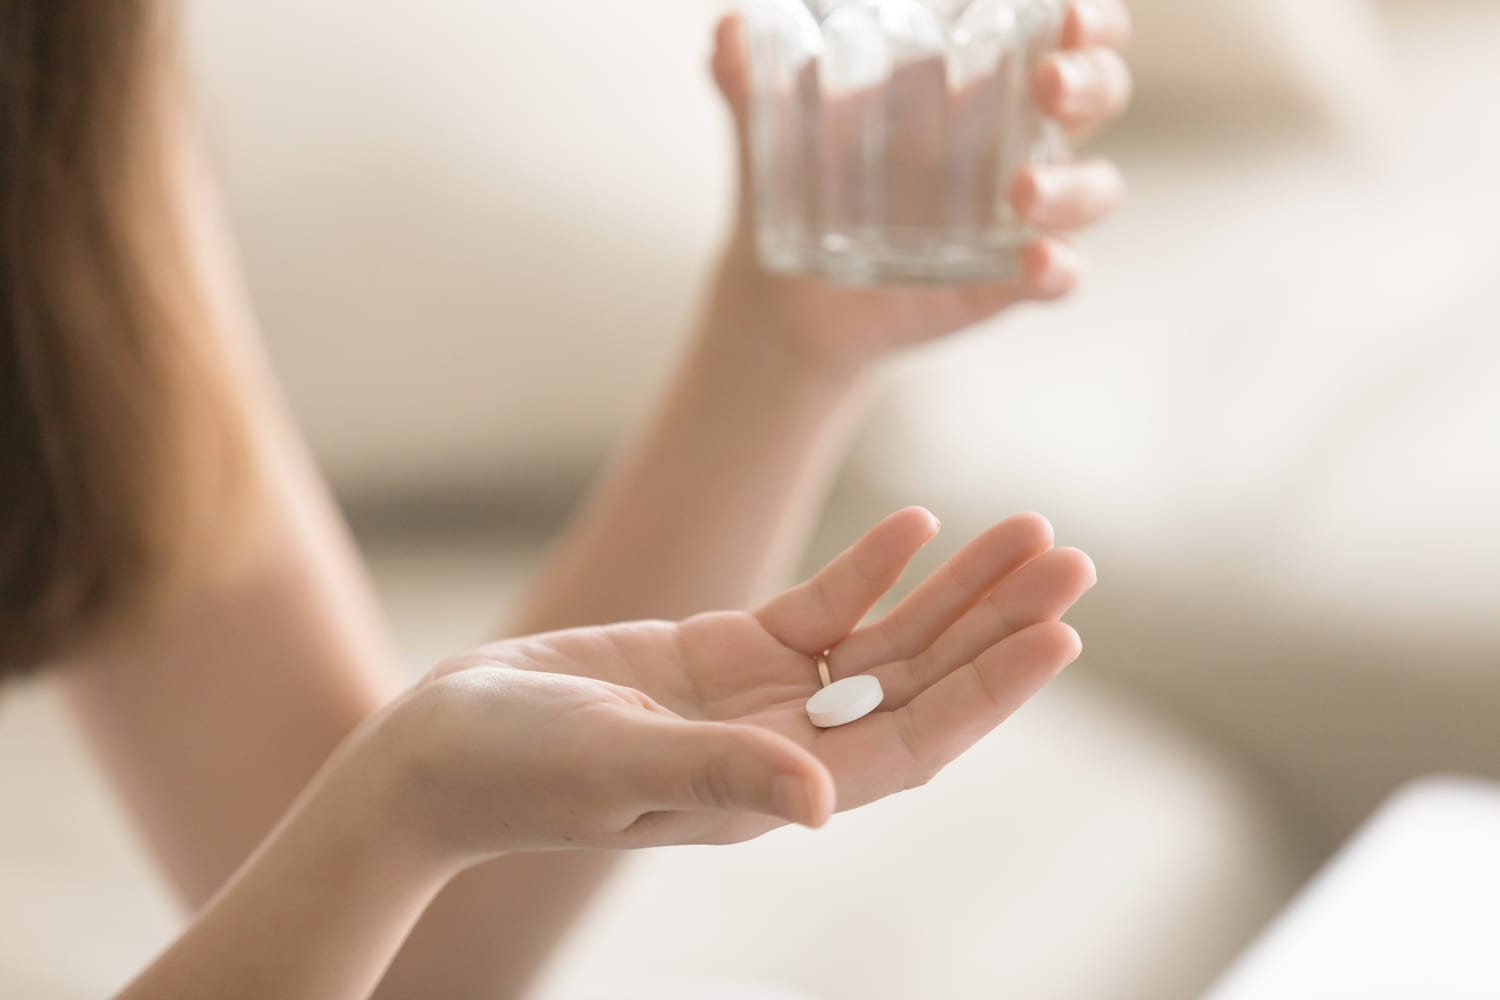 White pill in woman's hand